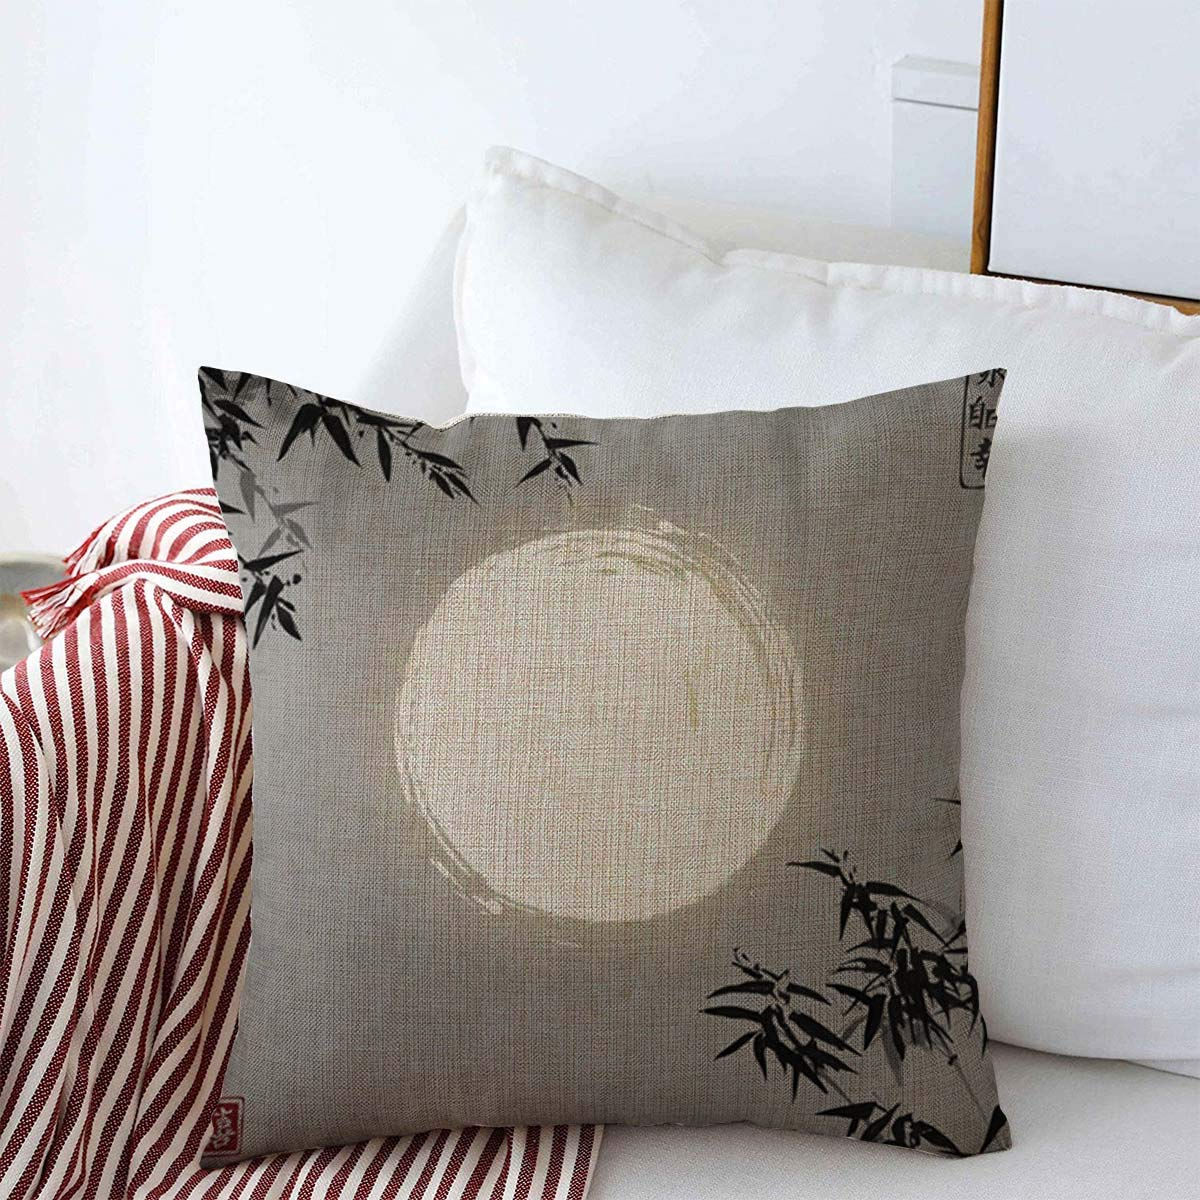 "Throw Pillow Covers 16"" x 16"" Oriental Bamboo Trees Moon Ink Painting Sumi Contains Hieroglyphs Eternity Freedom Design Cushion Square Linen Case for Winter Home Decorative"